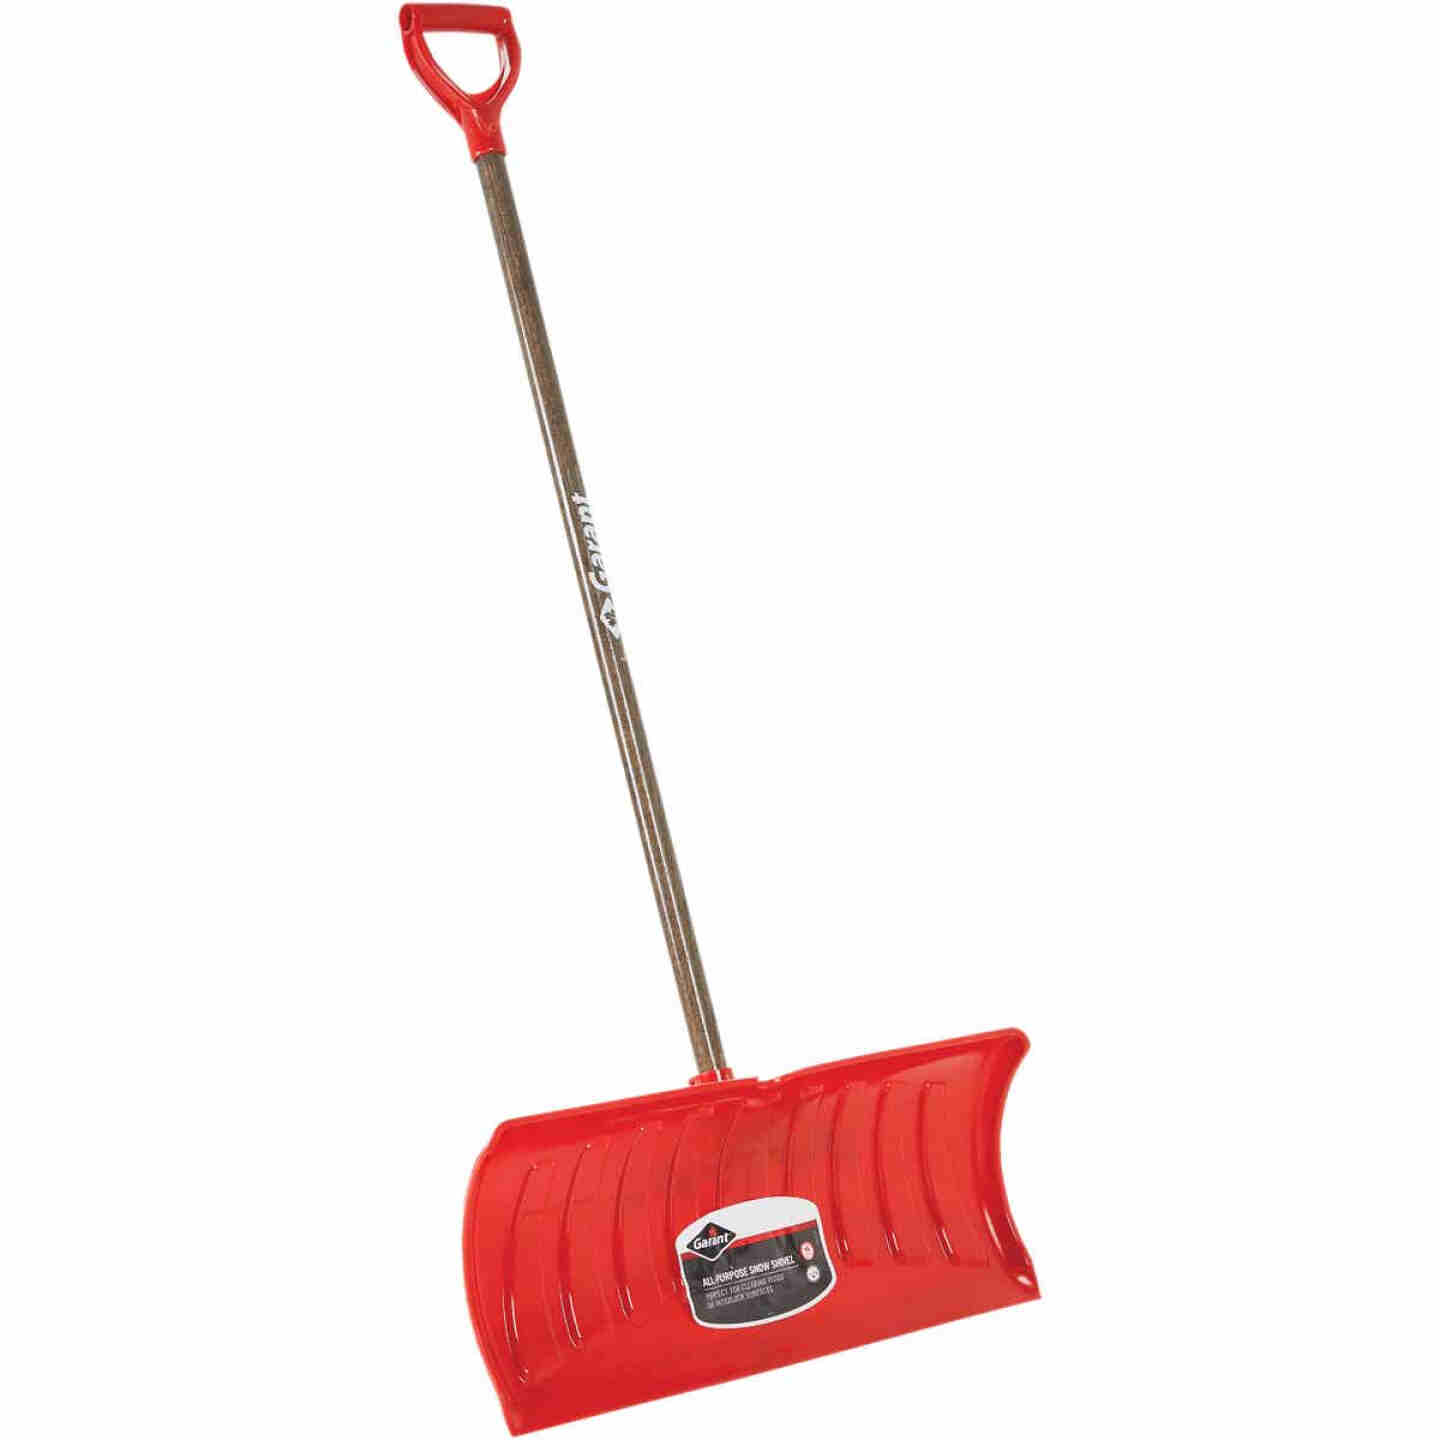 Garant Nordic 26 In. Poly Snow Pusher with 46.25 In. Wood Handle Image 1